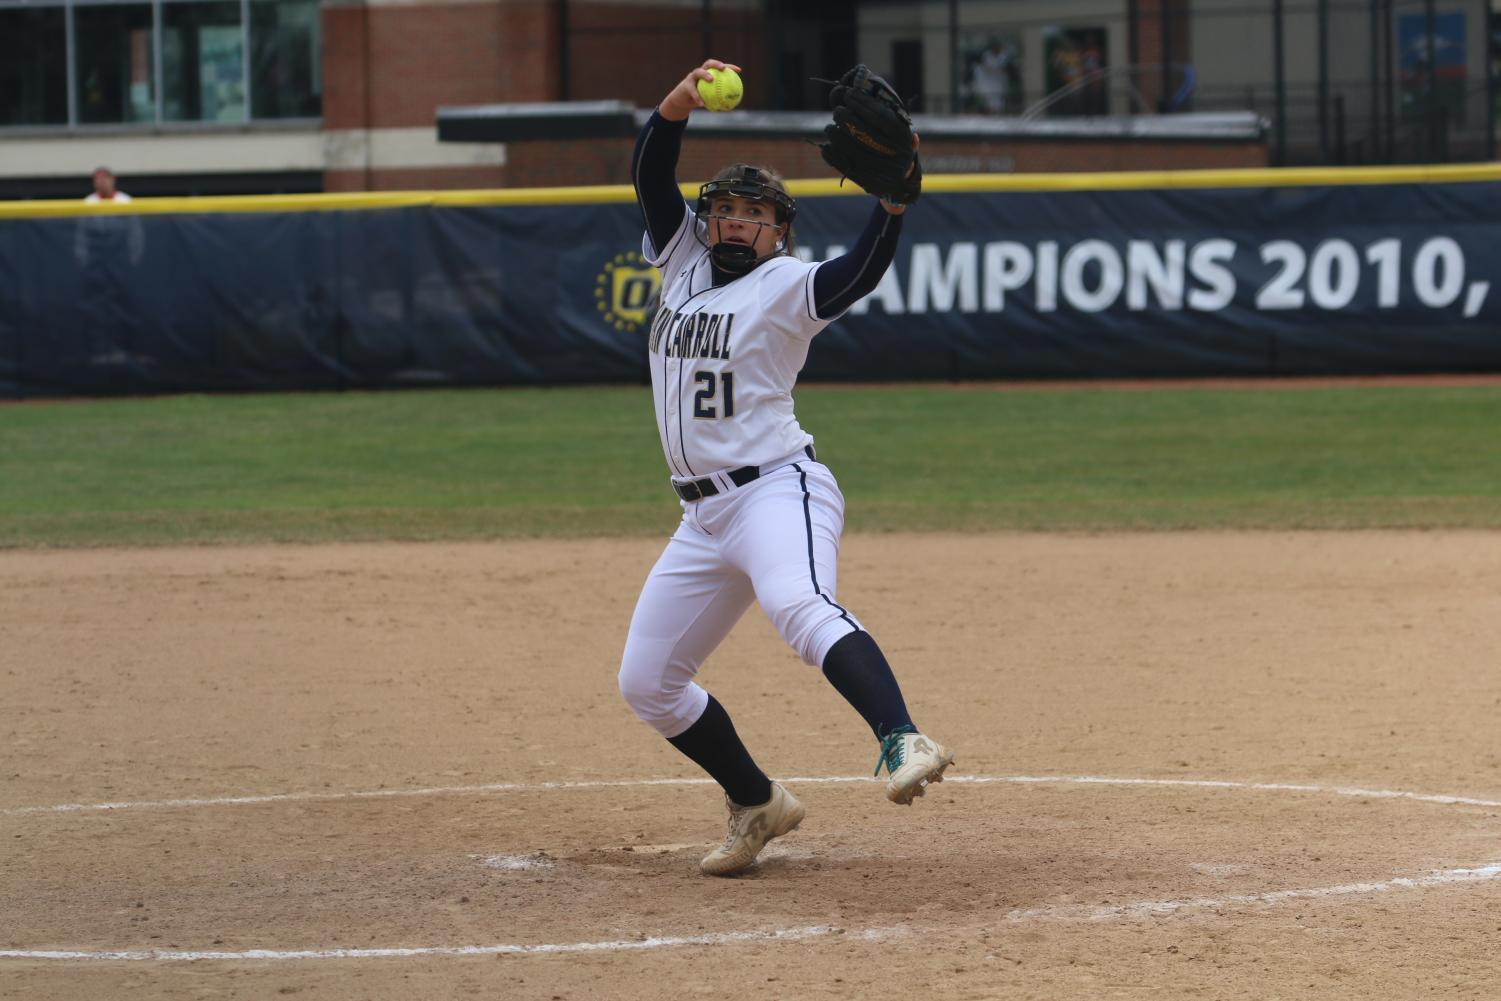 Junior pitcher Jenn Patterson winds up for a pitch against Baldwin Wallace on Saturday, April 6 at Bracken Field.